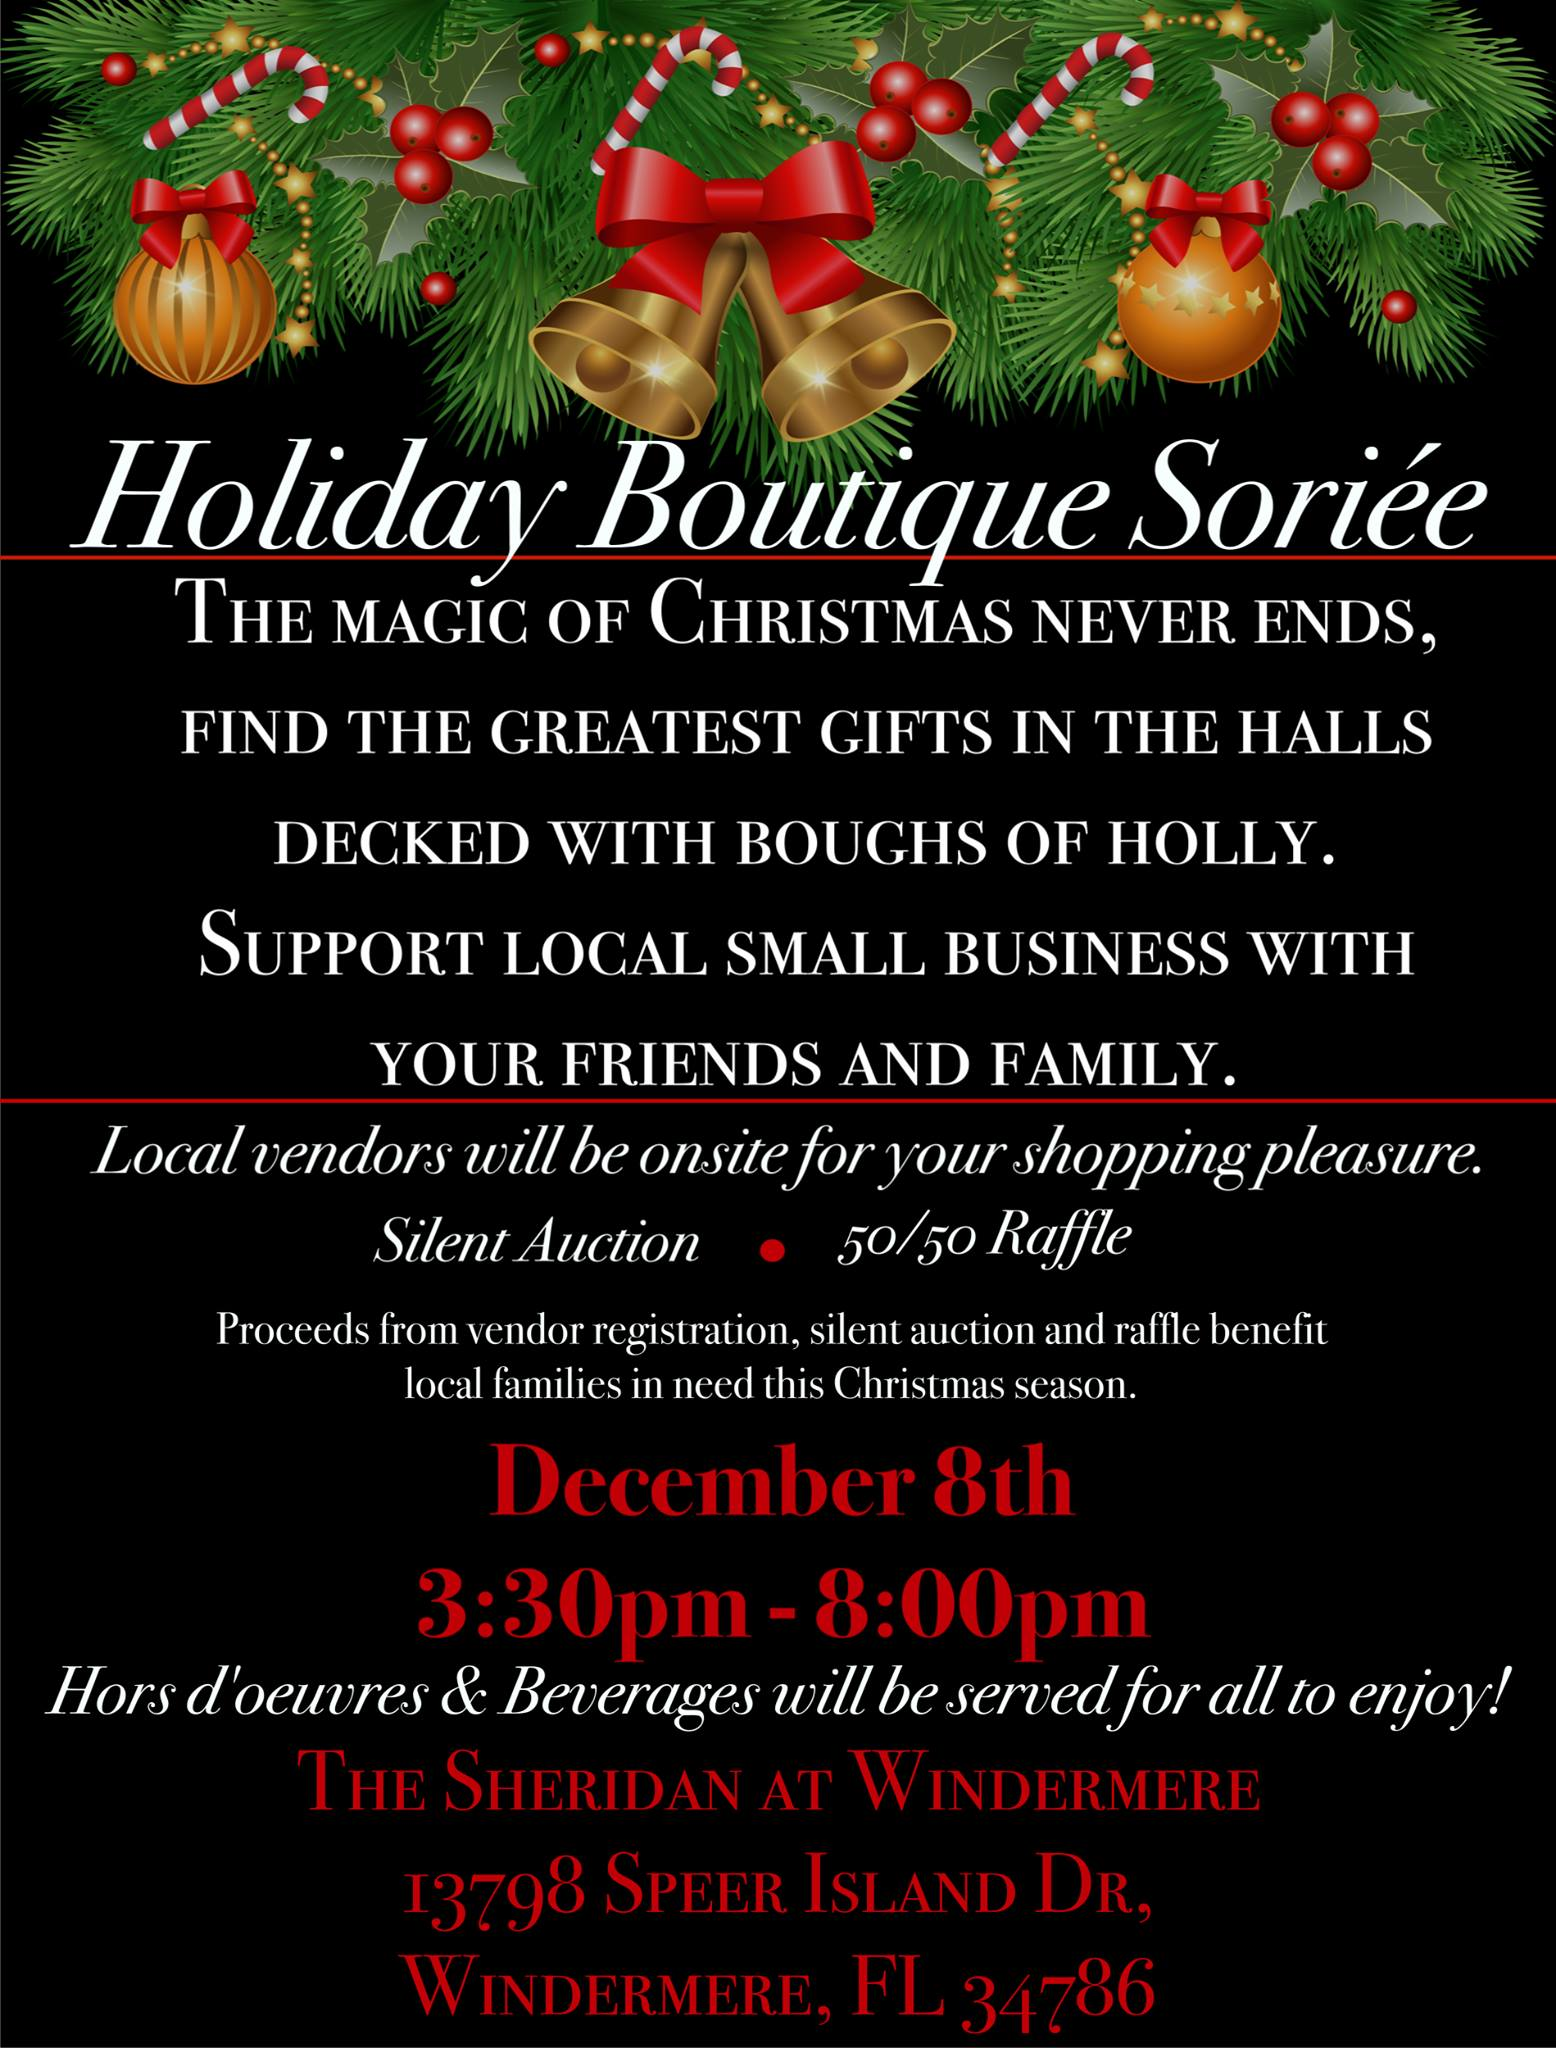 Holiday Boutique Soriee Invitation